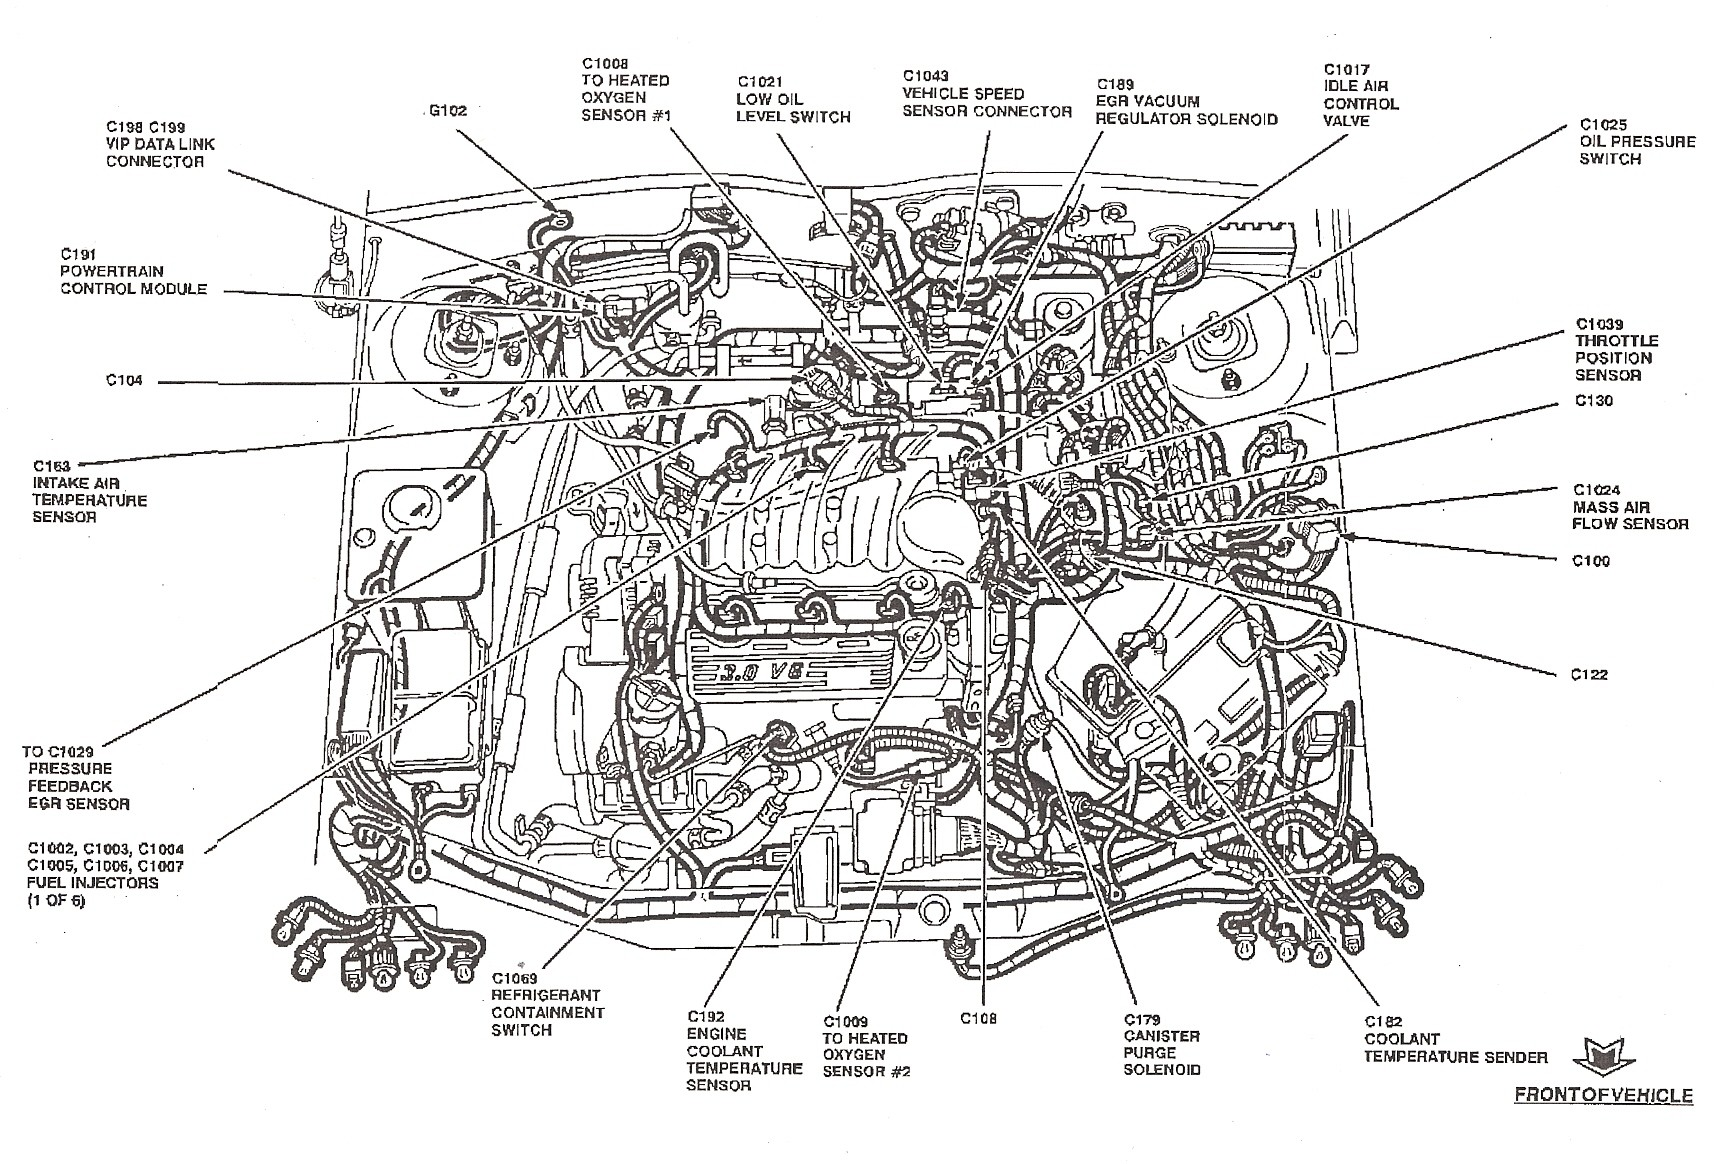 2002 ford explorer engine diagram electric fence circuit diy 1994 my wiring